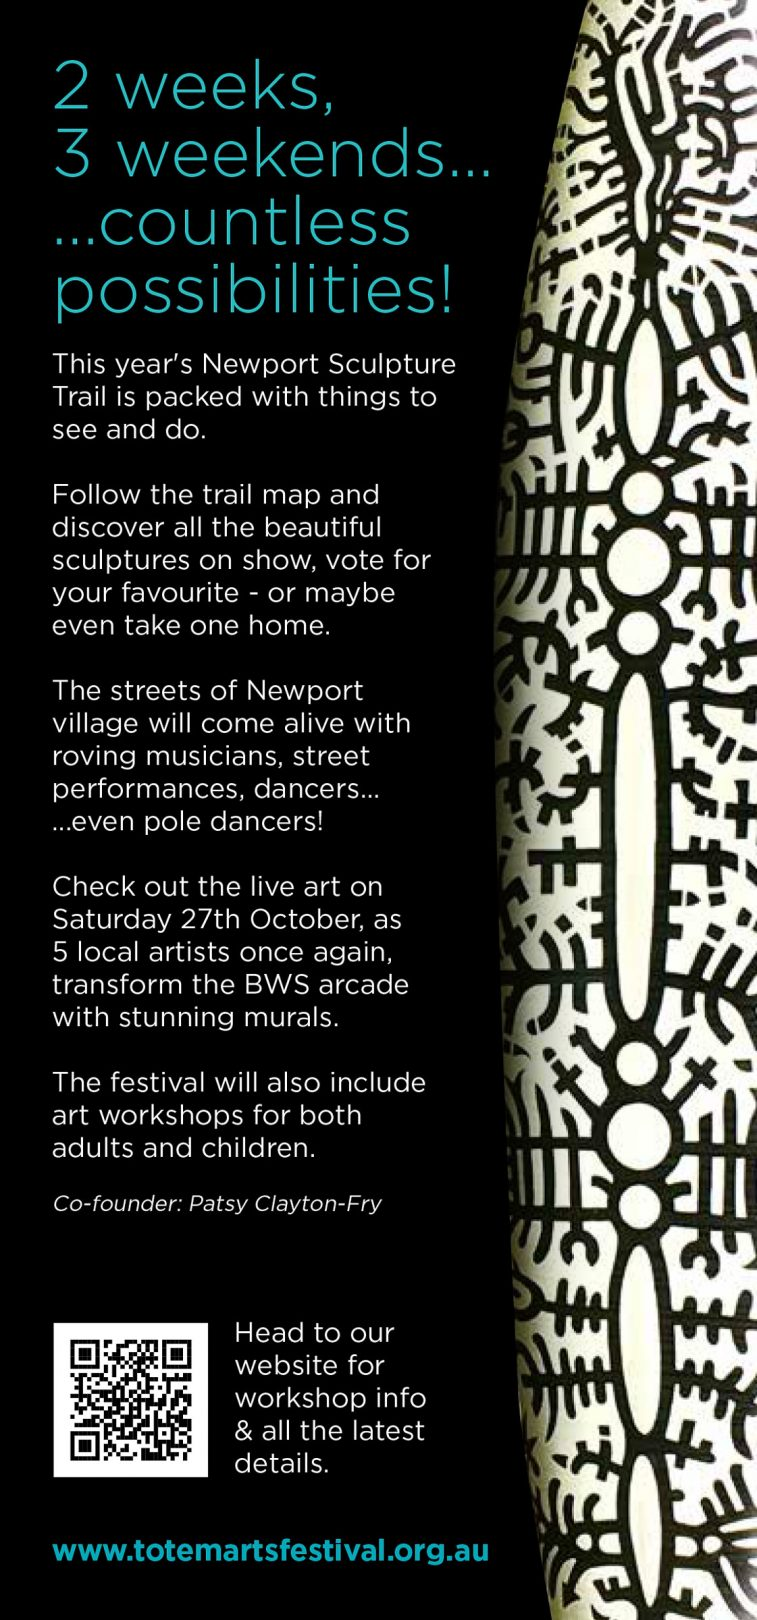 Newport Sculpture Trail 2018 brochure